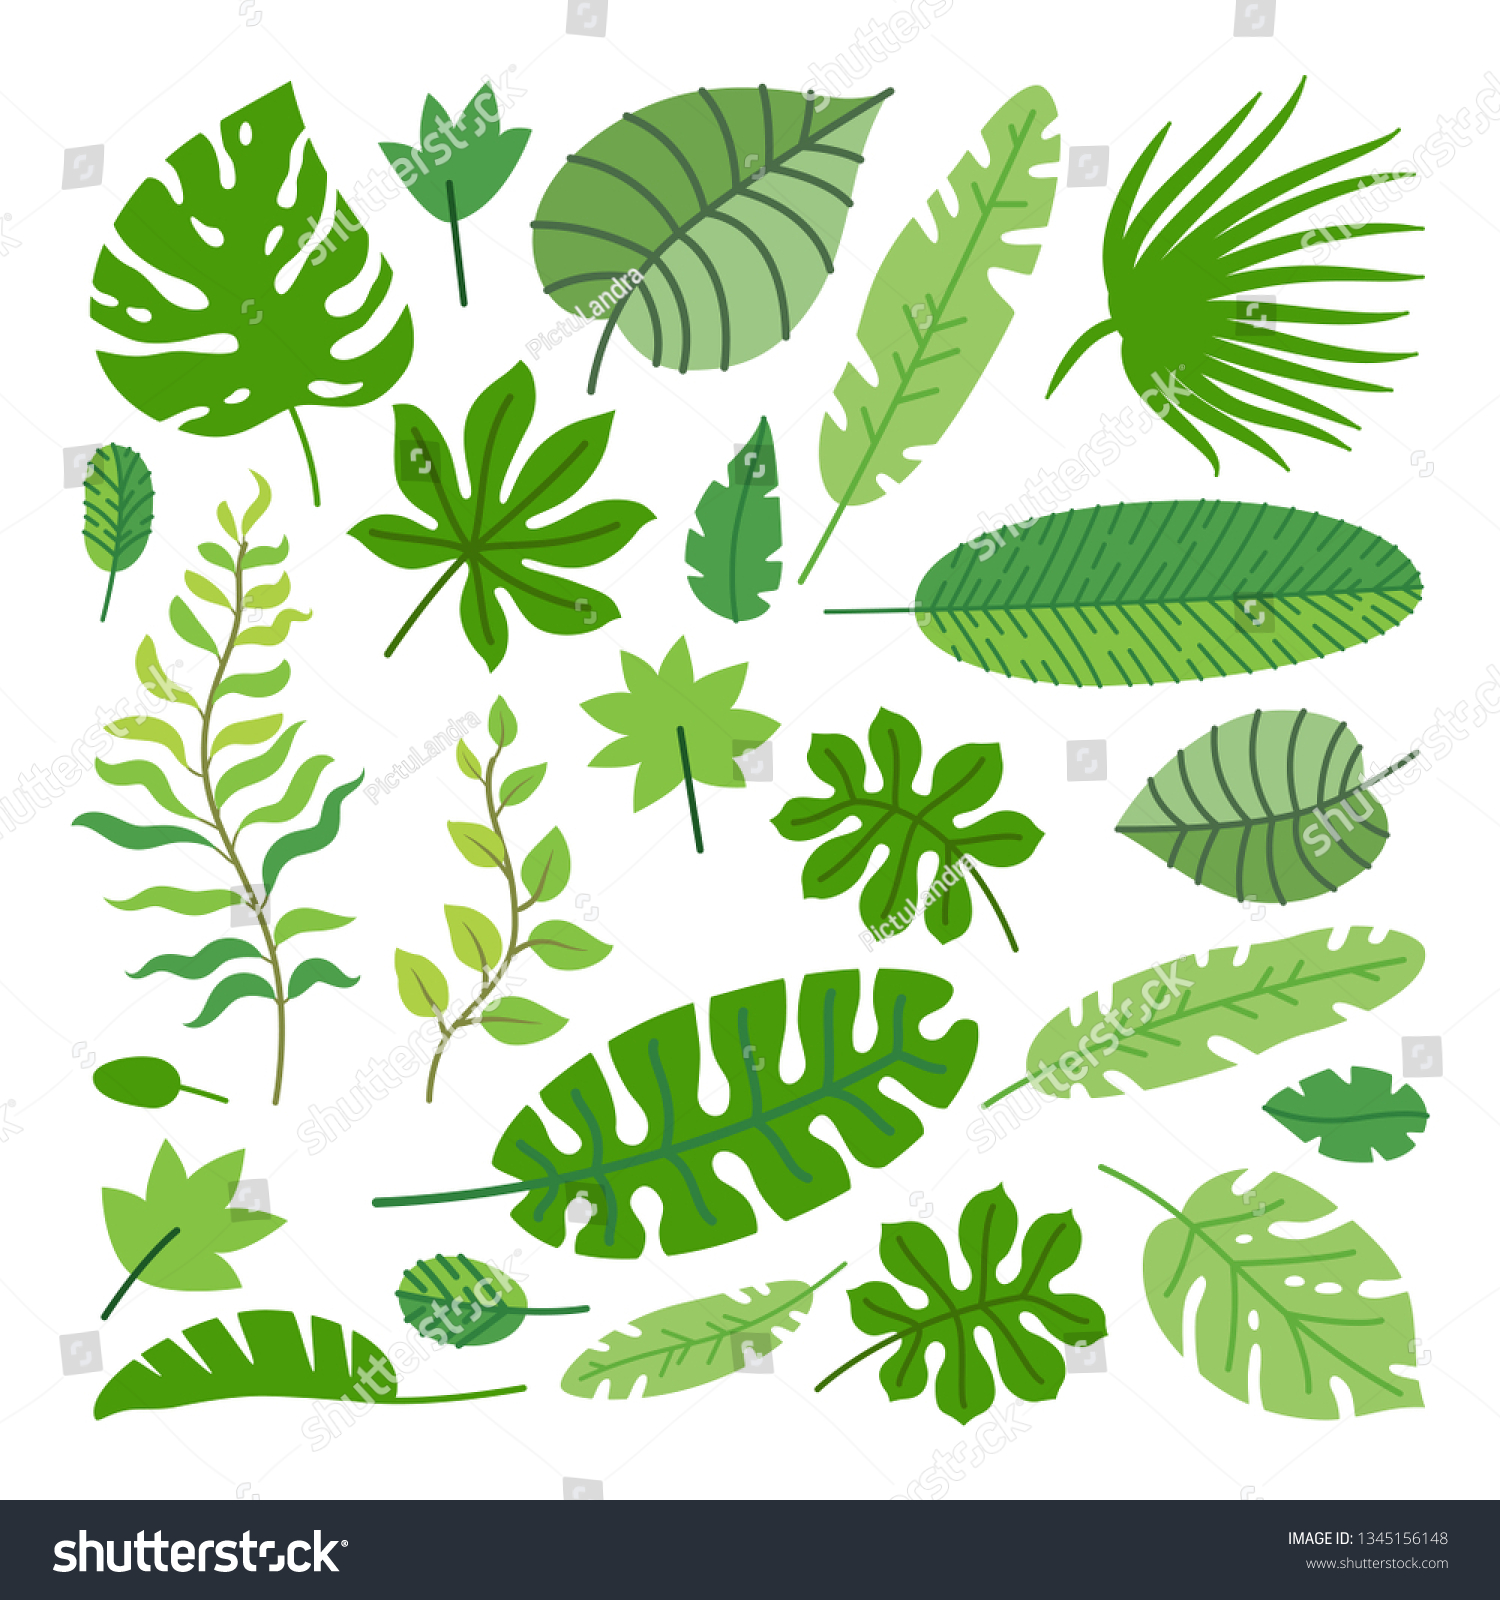 Set Tropical Leaves Vector Cartoon Rainforest Stock Vector Royalty Free 1345156148 Find & download free graphic resources for tropical leaves. https www shutterstock com image vector set tropical leaves vector cartoon rainforest 1345156148